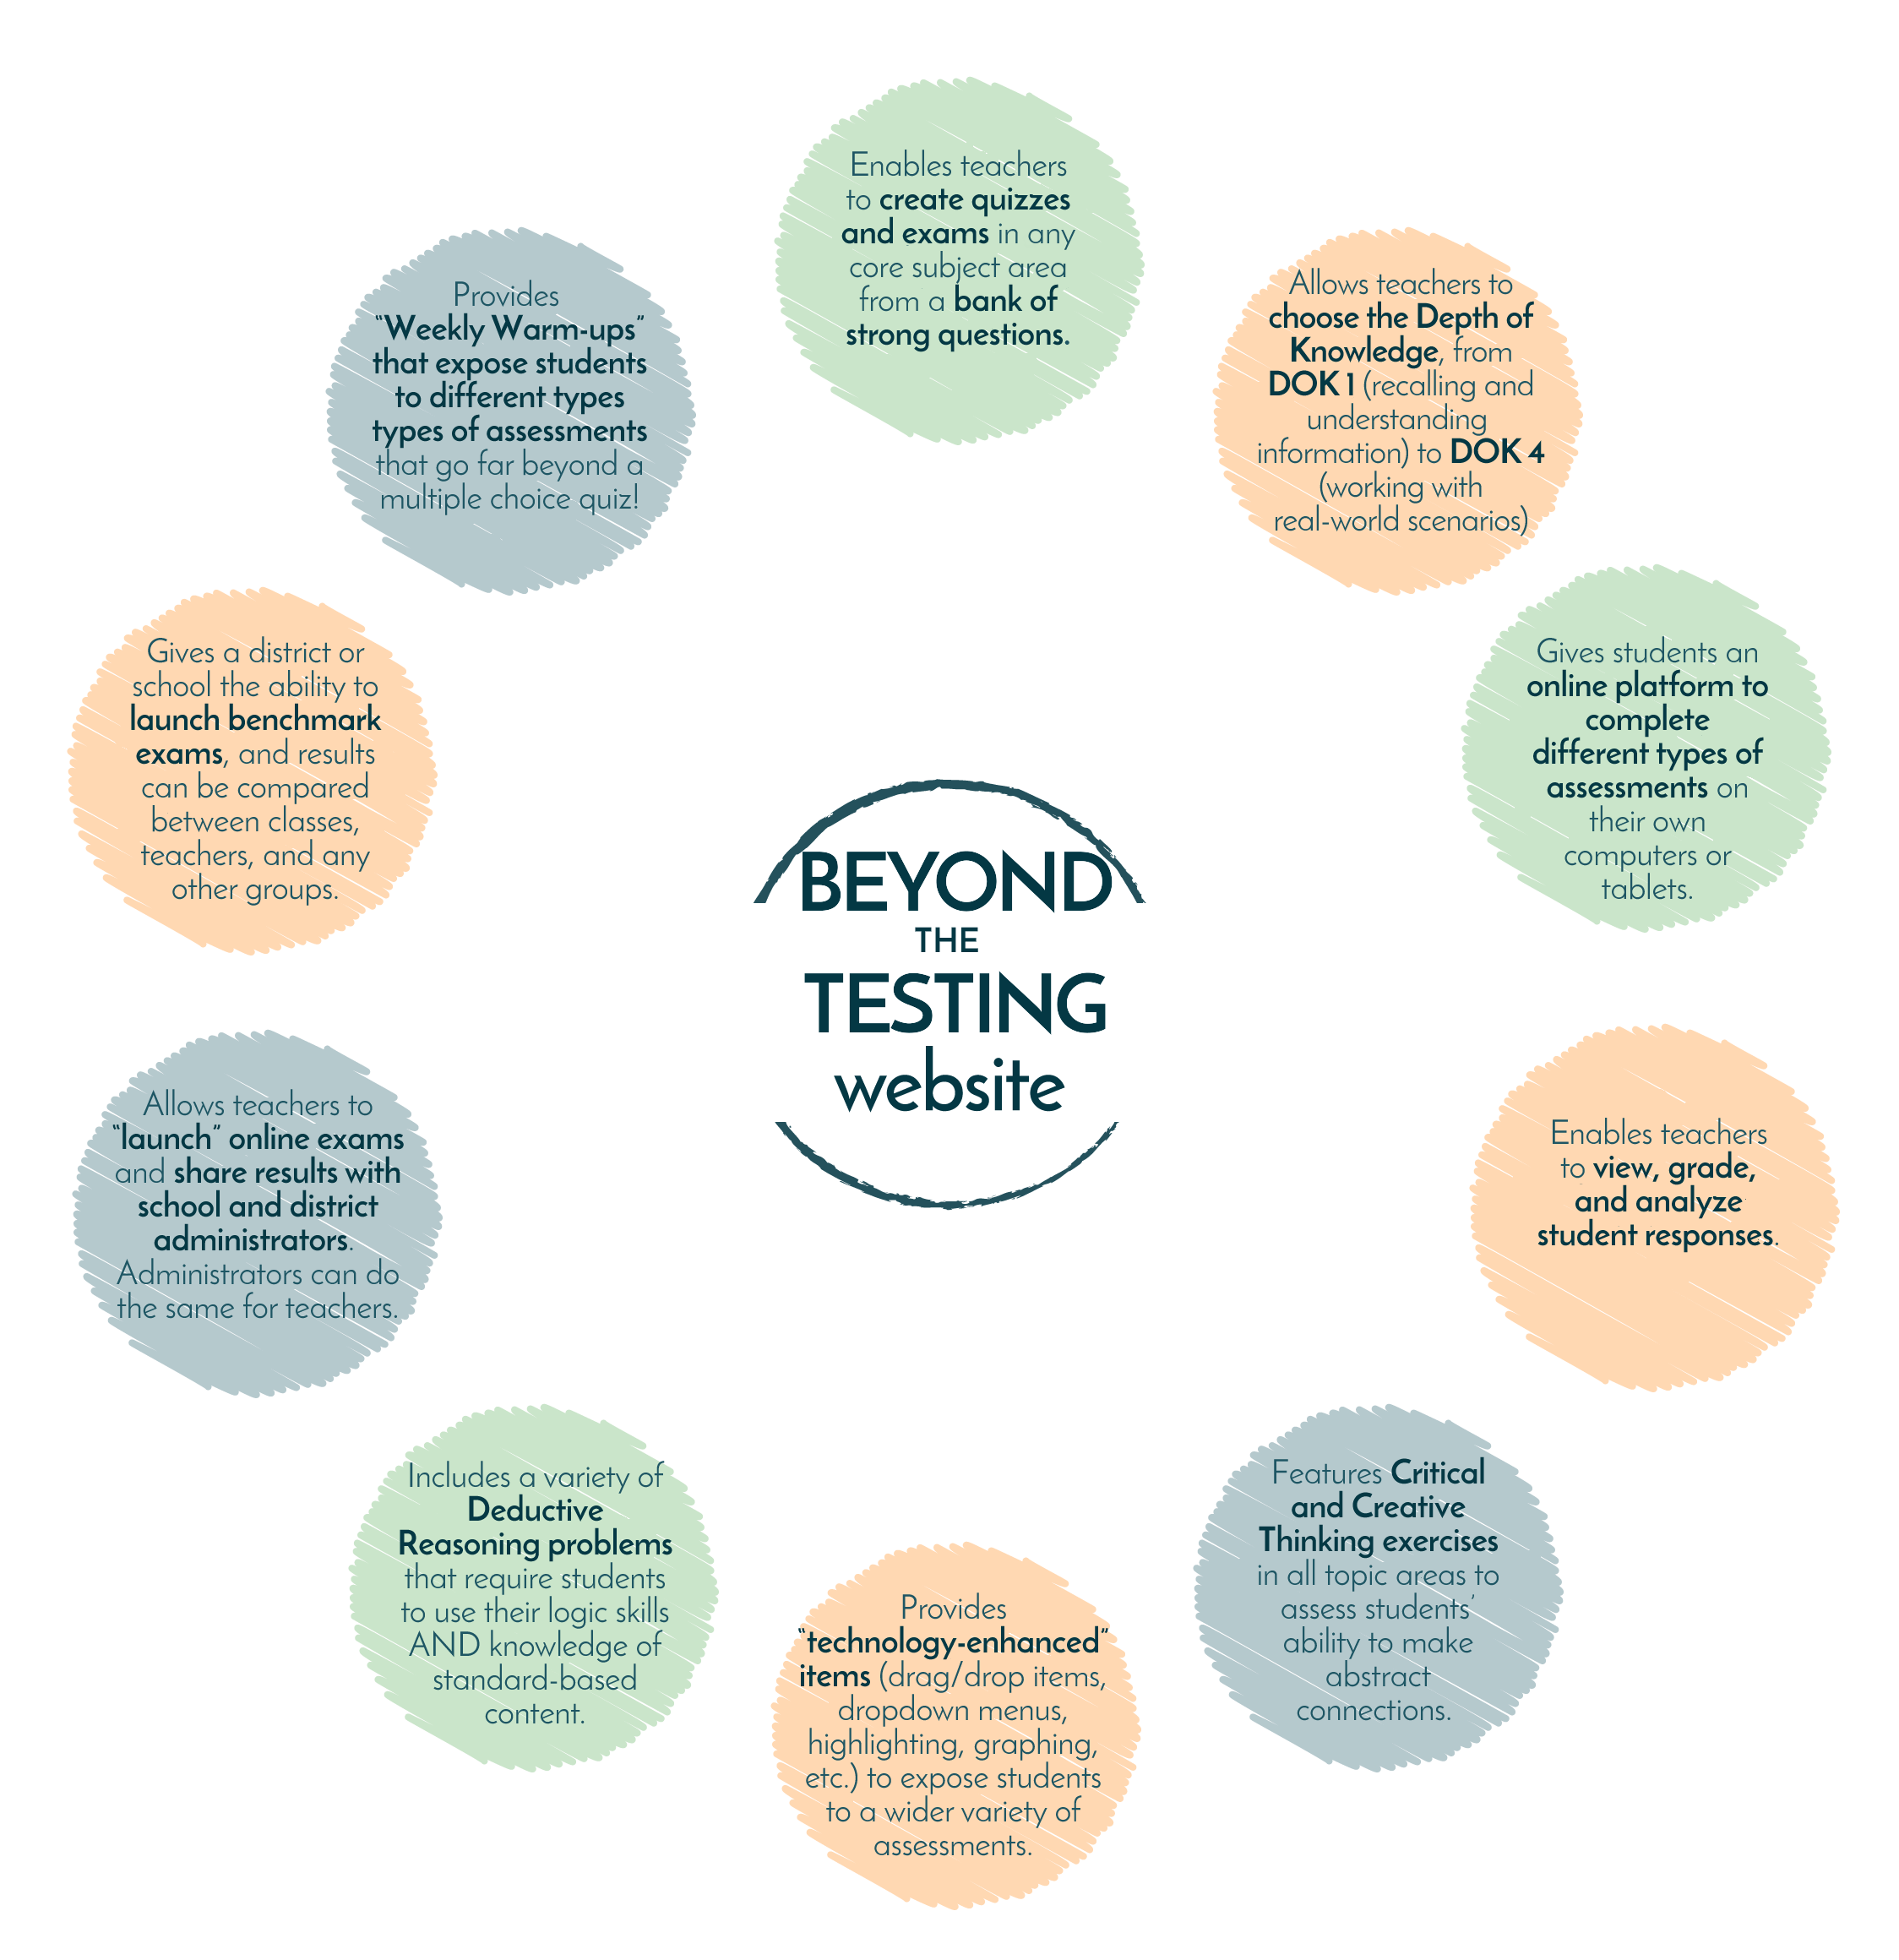 beyond tests alternatives in assessment Read alternative approaches to outcomes assessment: beyond psychometric tests, pediatric blood & cancer on deepdyve, the largest online rental service for scholarly research with thousands of academic publications available at your fingertips.